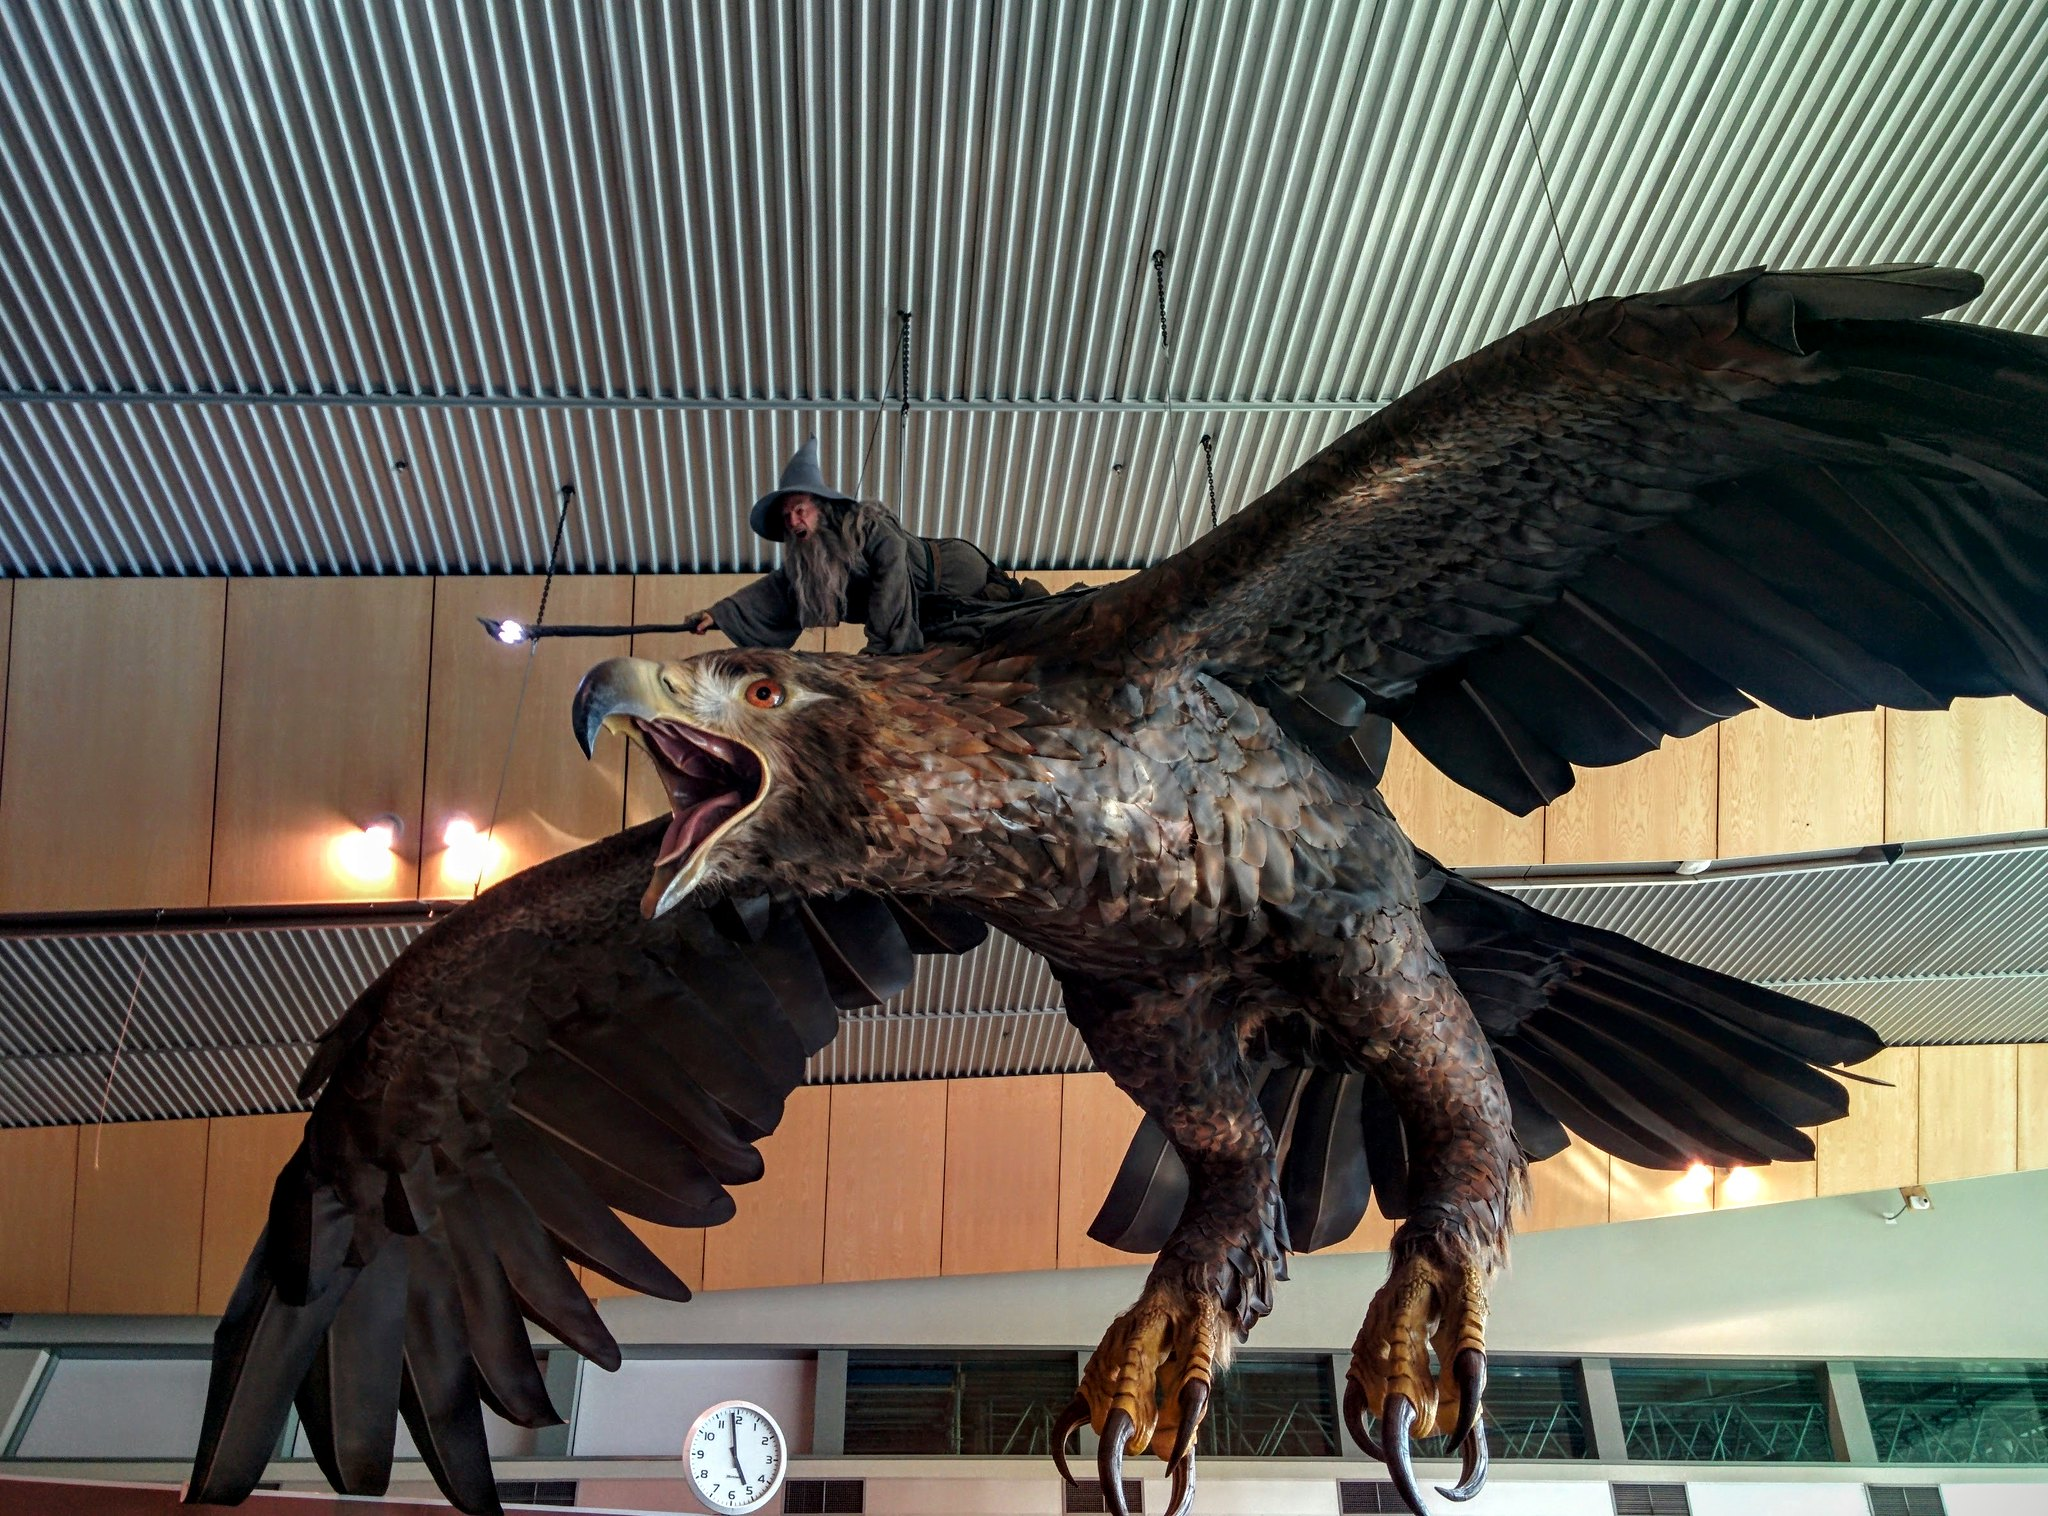 Gandalf riding an eagle in Wellington airport